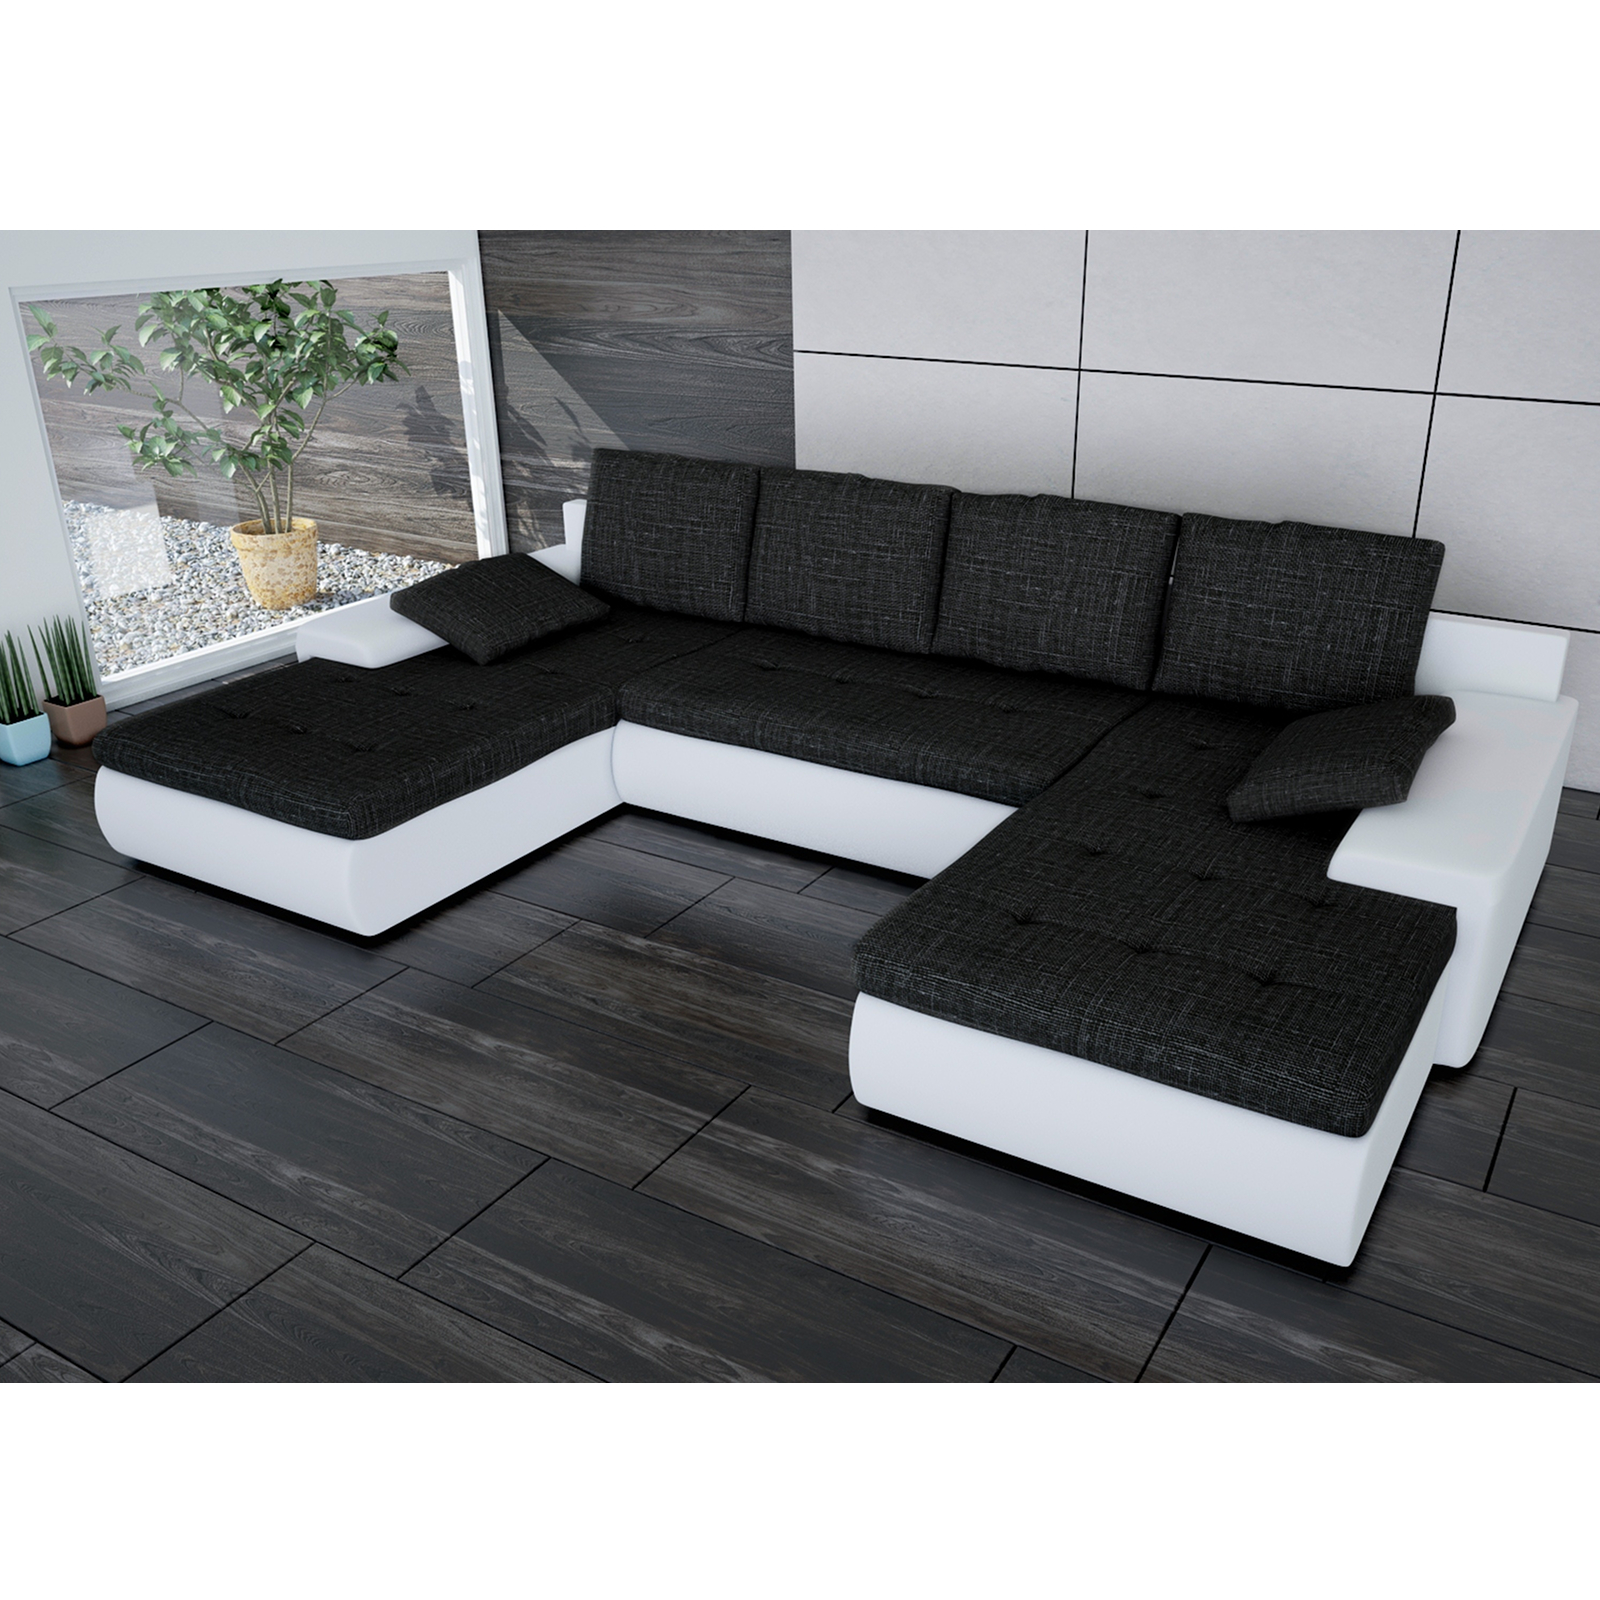 sofa linosa wei schwarz ecksofa von jalano. Black Bedroom Furniture Sets. Home Design Ideas